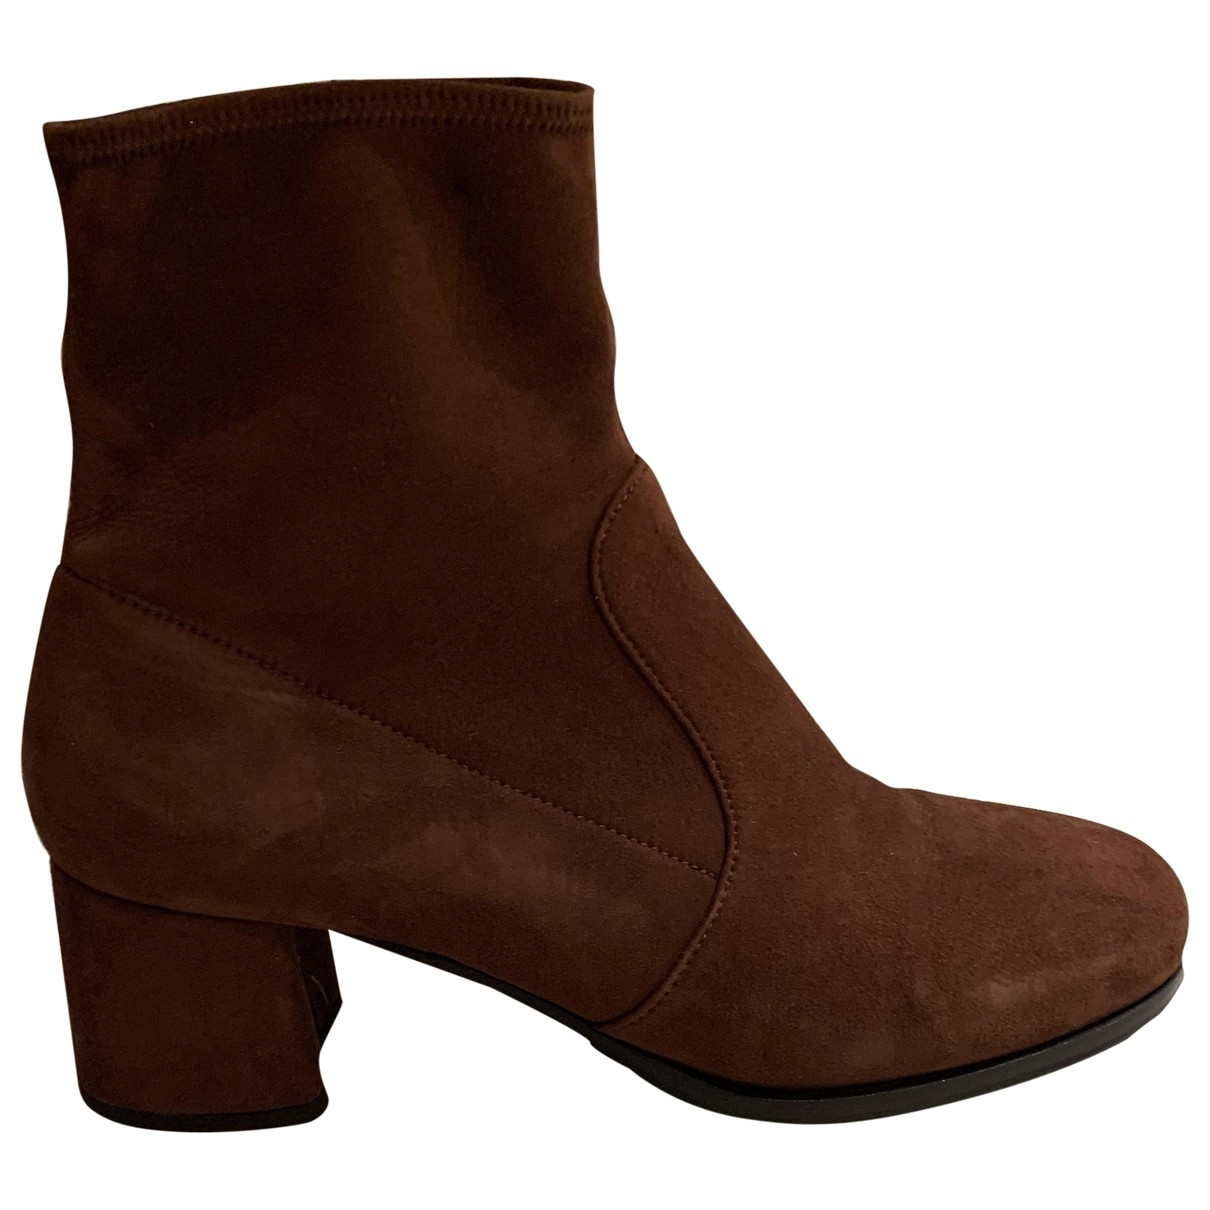 Prada \N Brown Suede Ankle boots for Women 38.5 EU